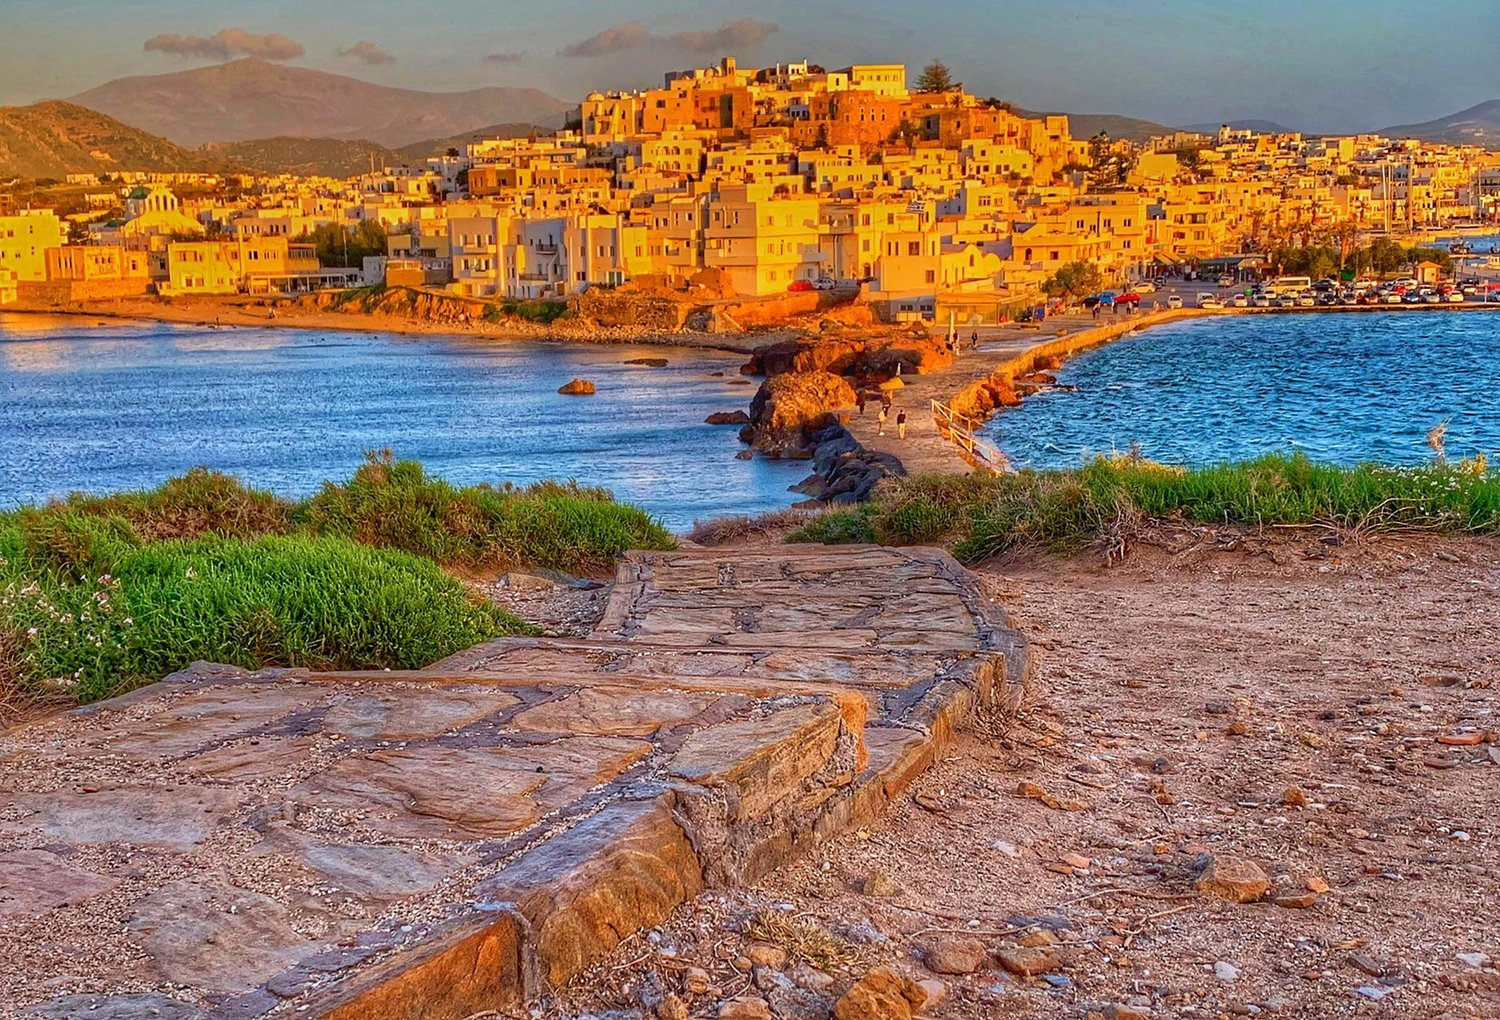 Incredible photo of Naxos from the Portara taken by my friend Amy Osterburg, who visited the week before us.